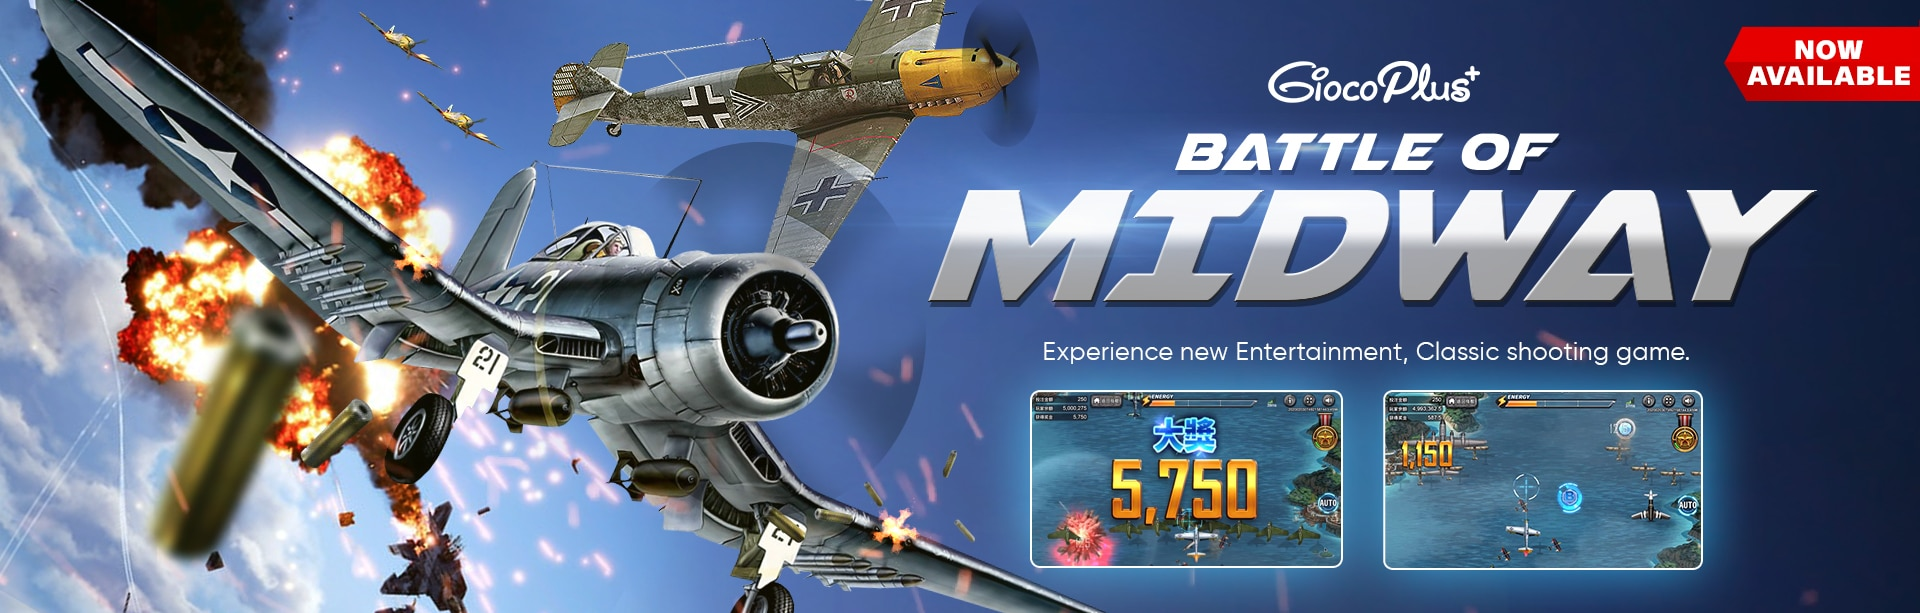 Battle Of Midway Gioco Plus เกม Slot369